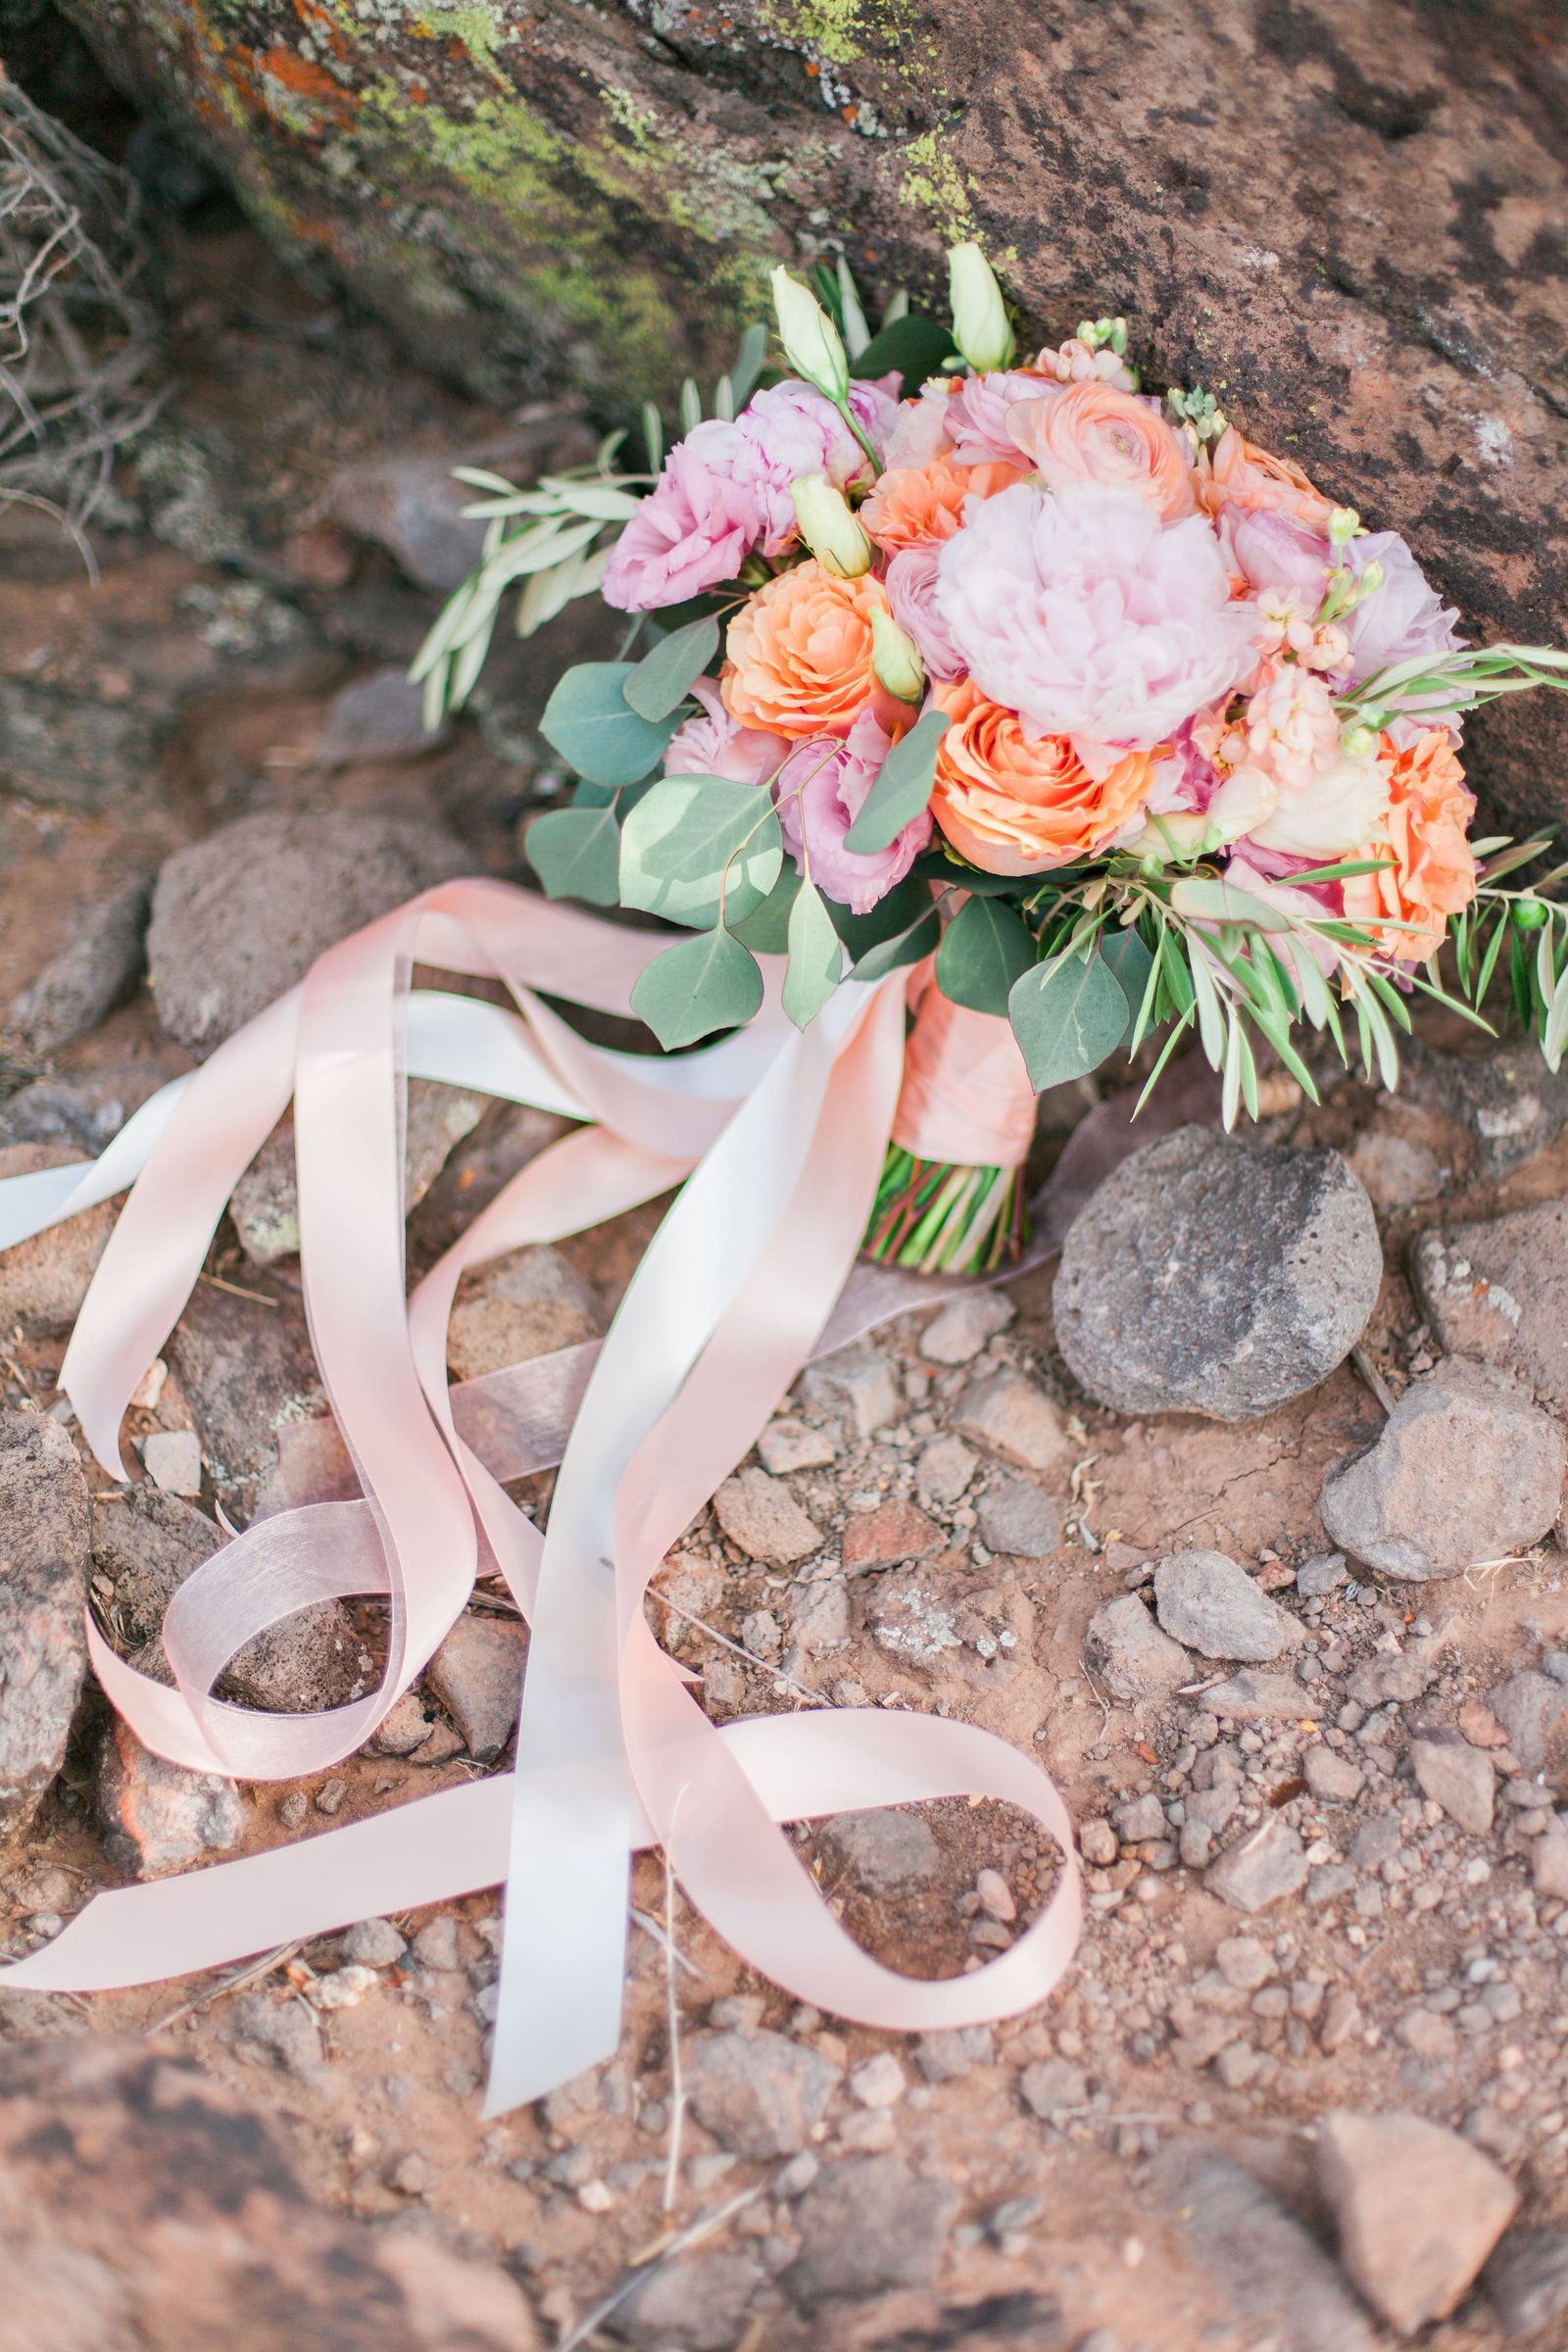 Your-Event-Florist-Arizona-Wedding-Flowers9